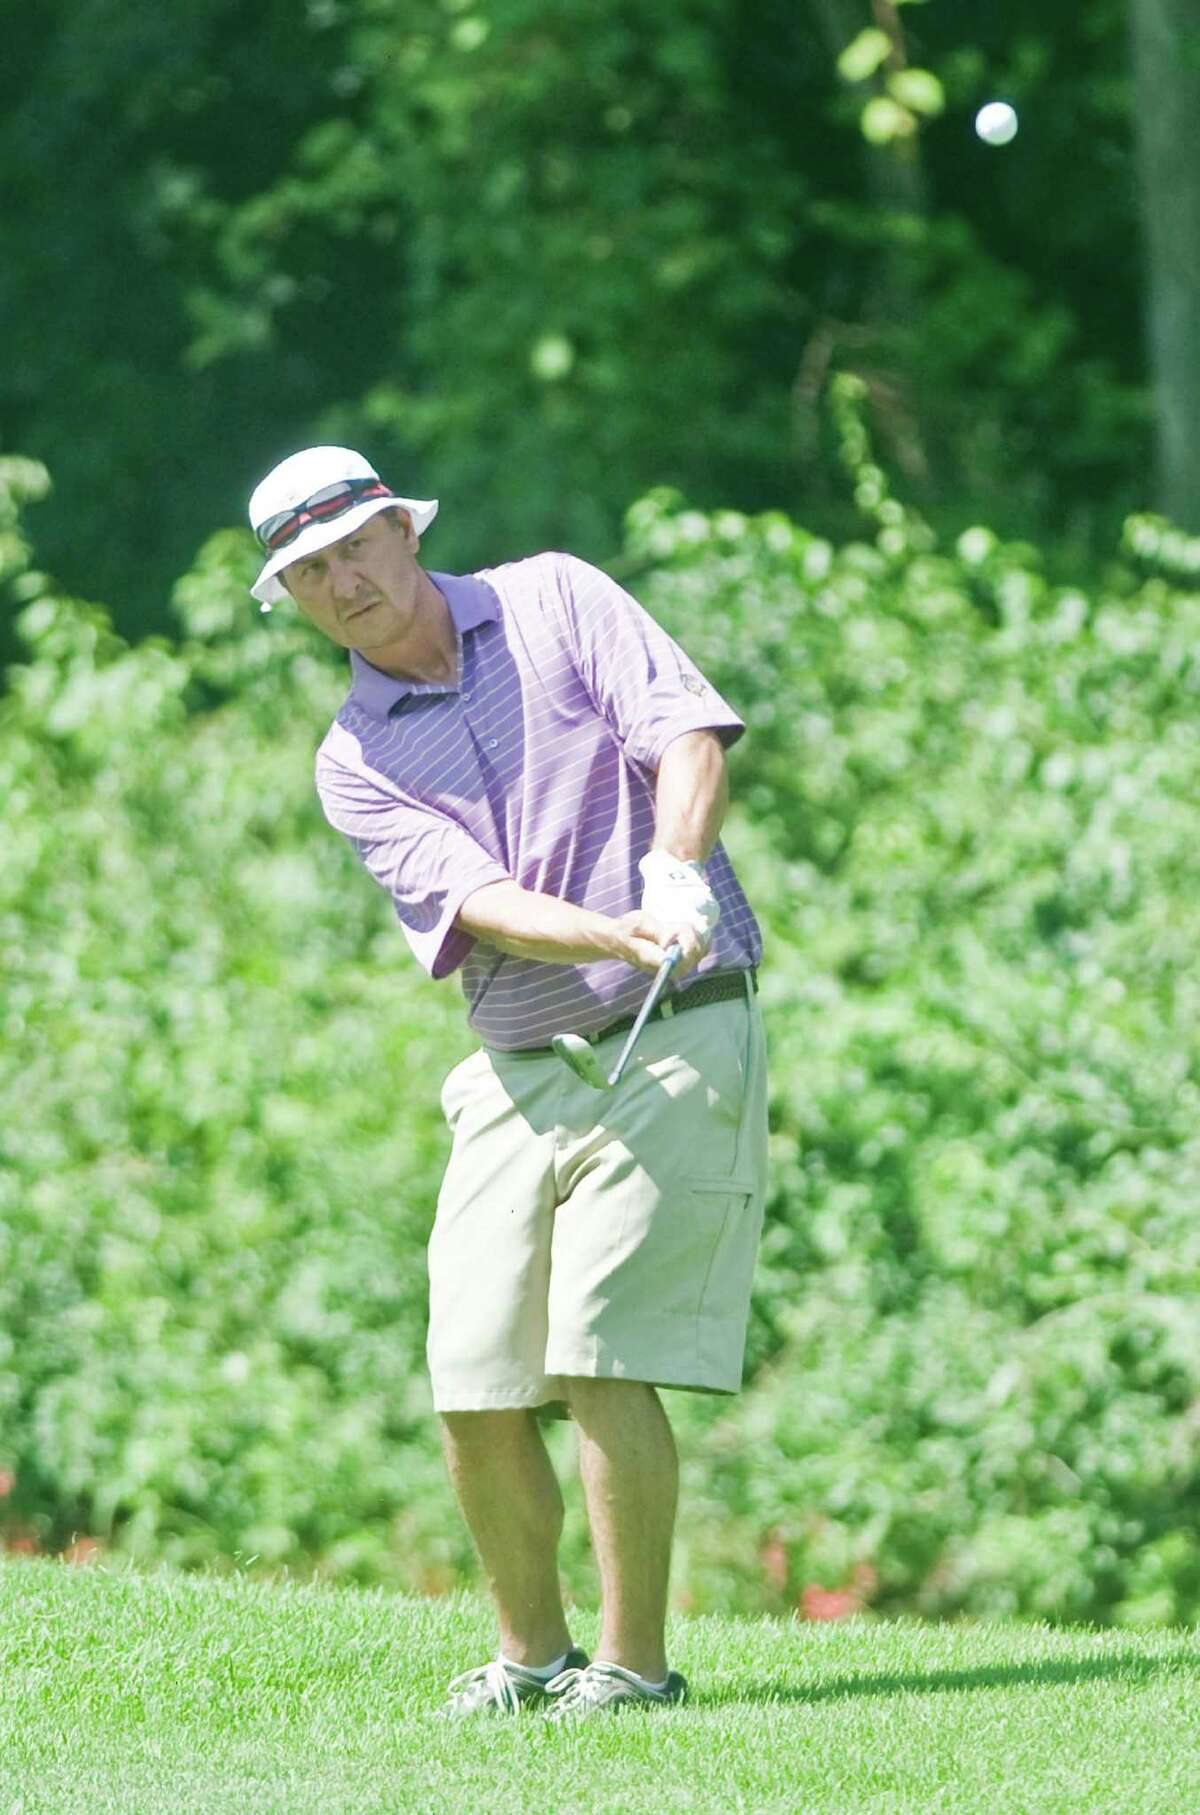 Chet Hrostek watches his wedge shot in the final round of Danbury Amateur golf tournament at Richter Park. Sunday, July 19, 2015